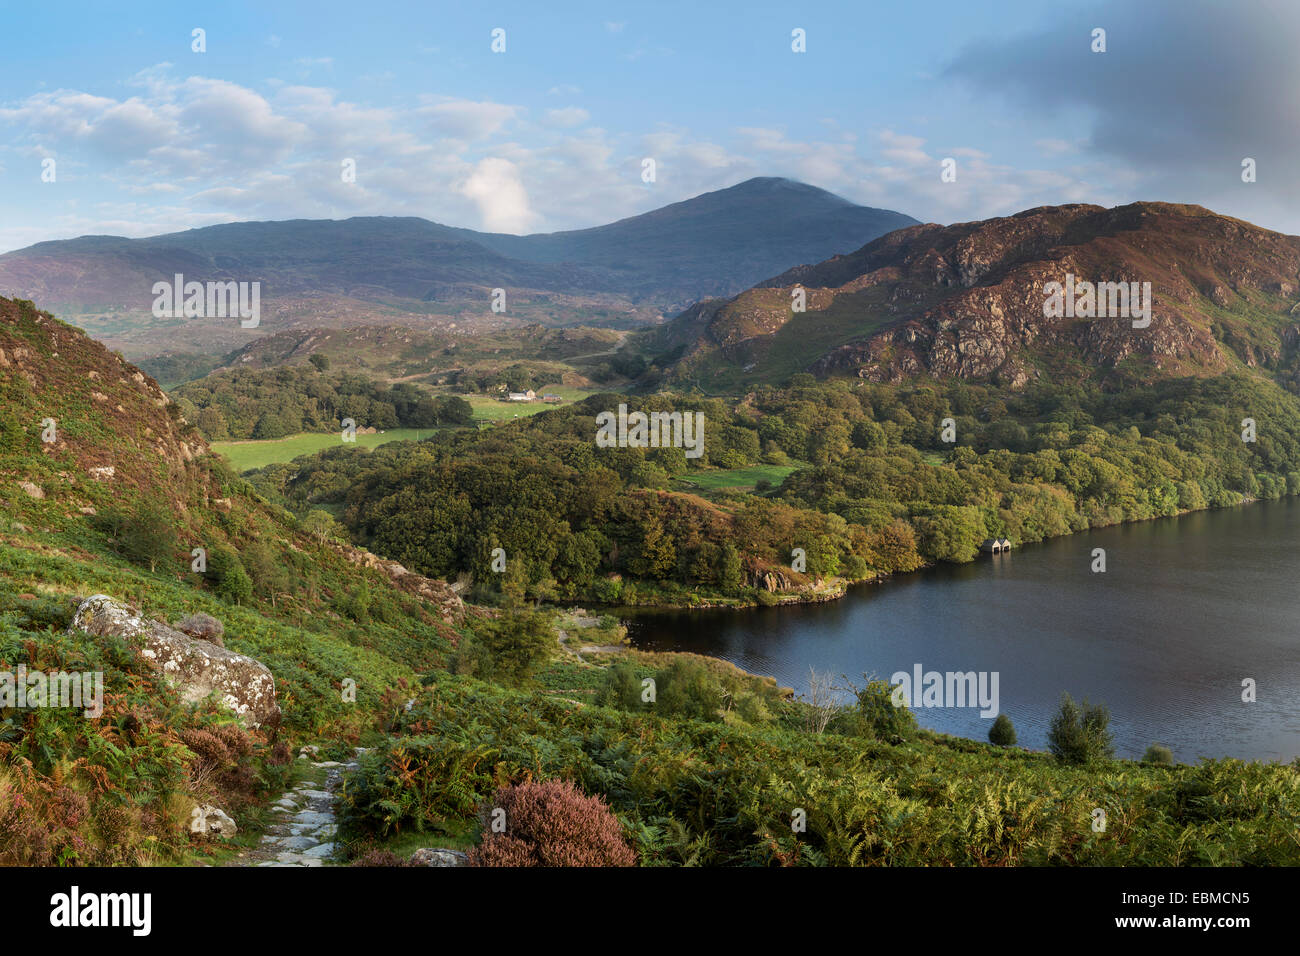 The early morning sun lights up the hills and mountains surrounding Llyn Dinas, Snowdonia, North Wales Stock Photo